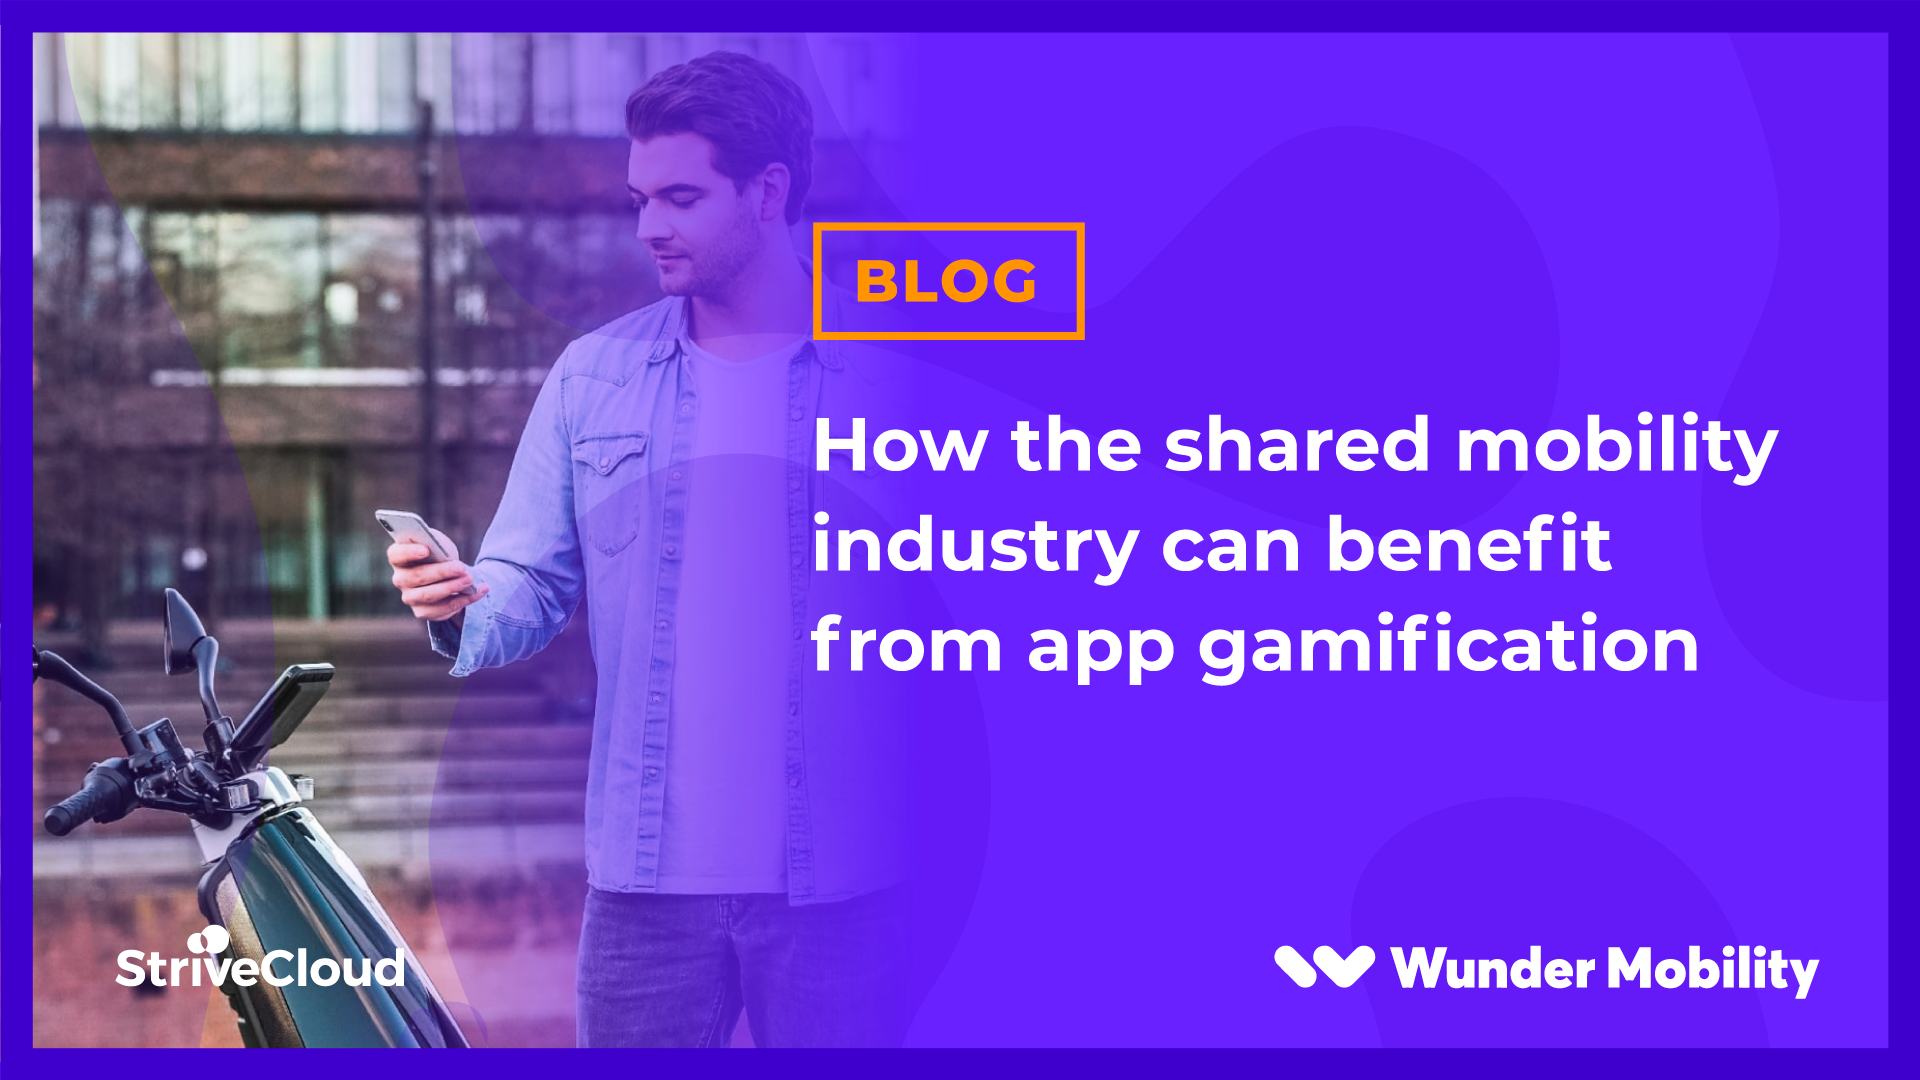 How the shared mobility industry can benefit from app gamification